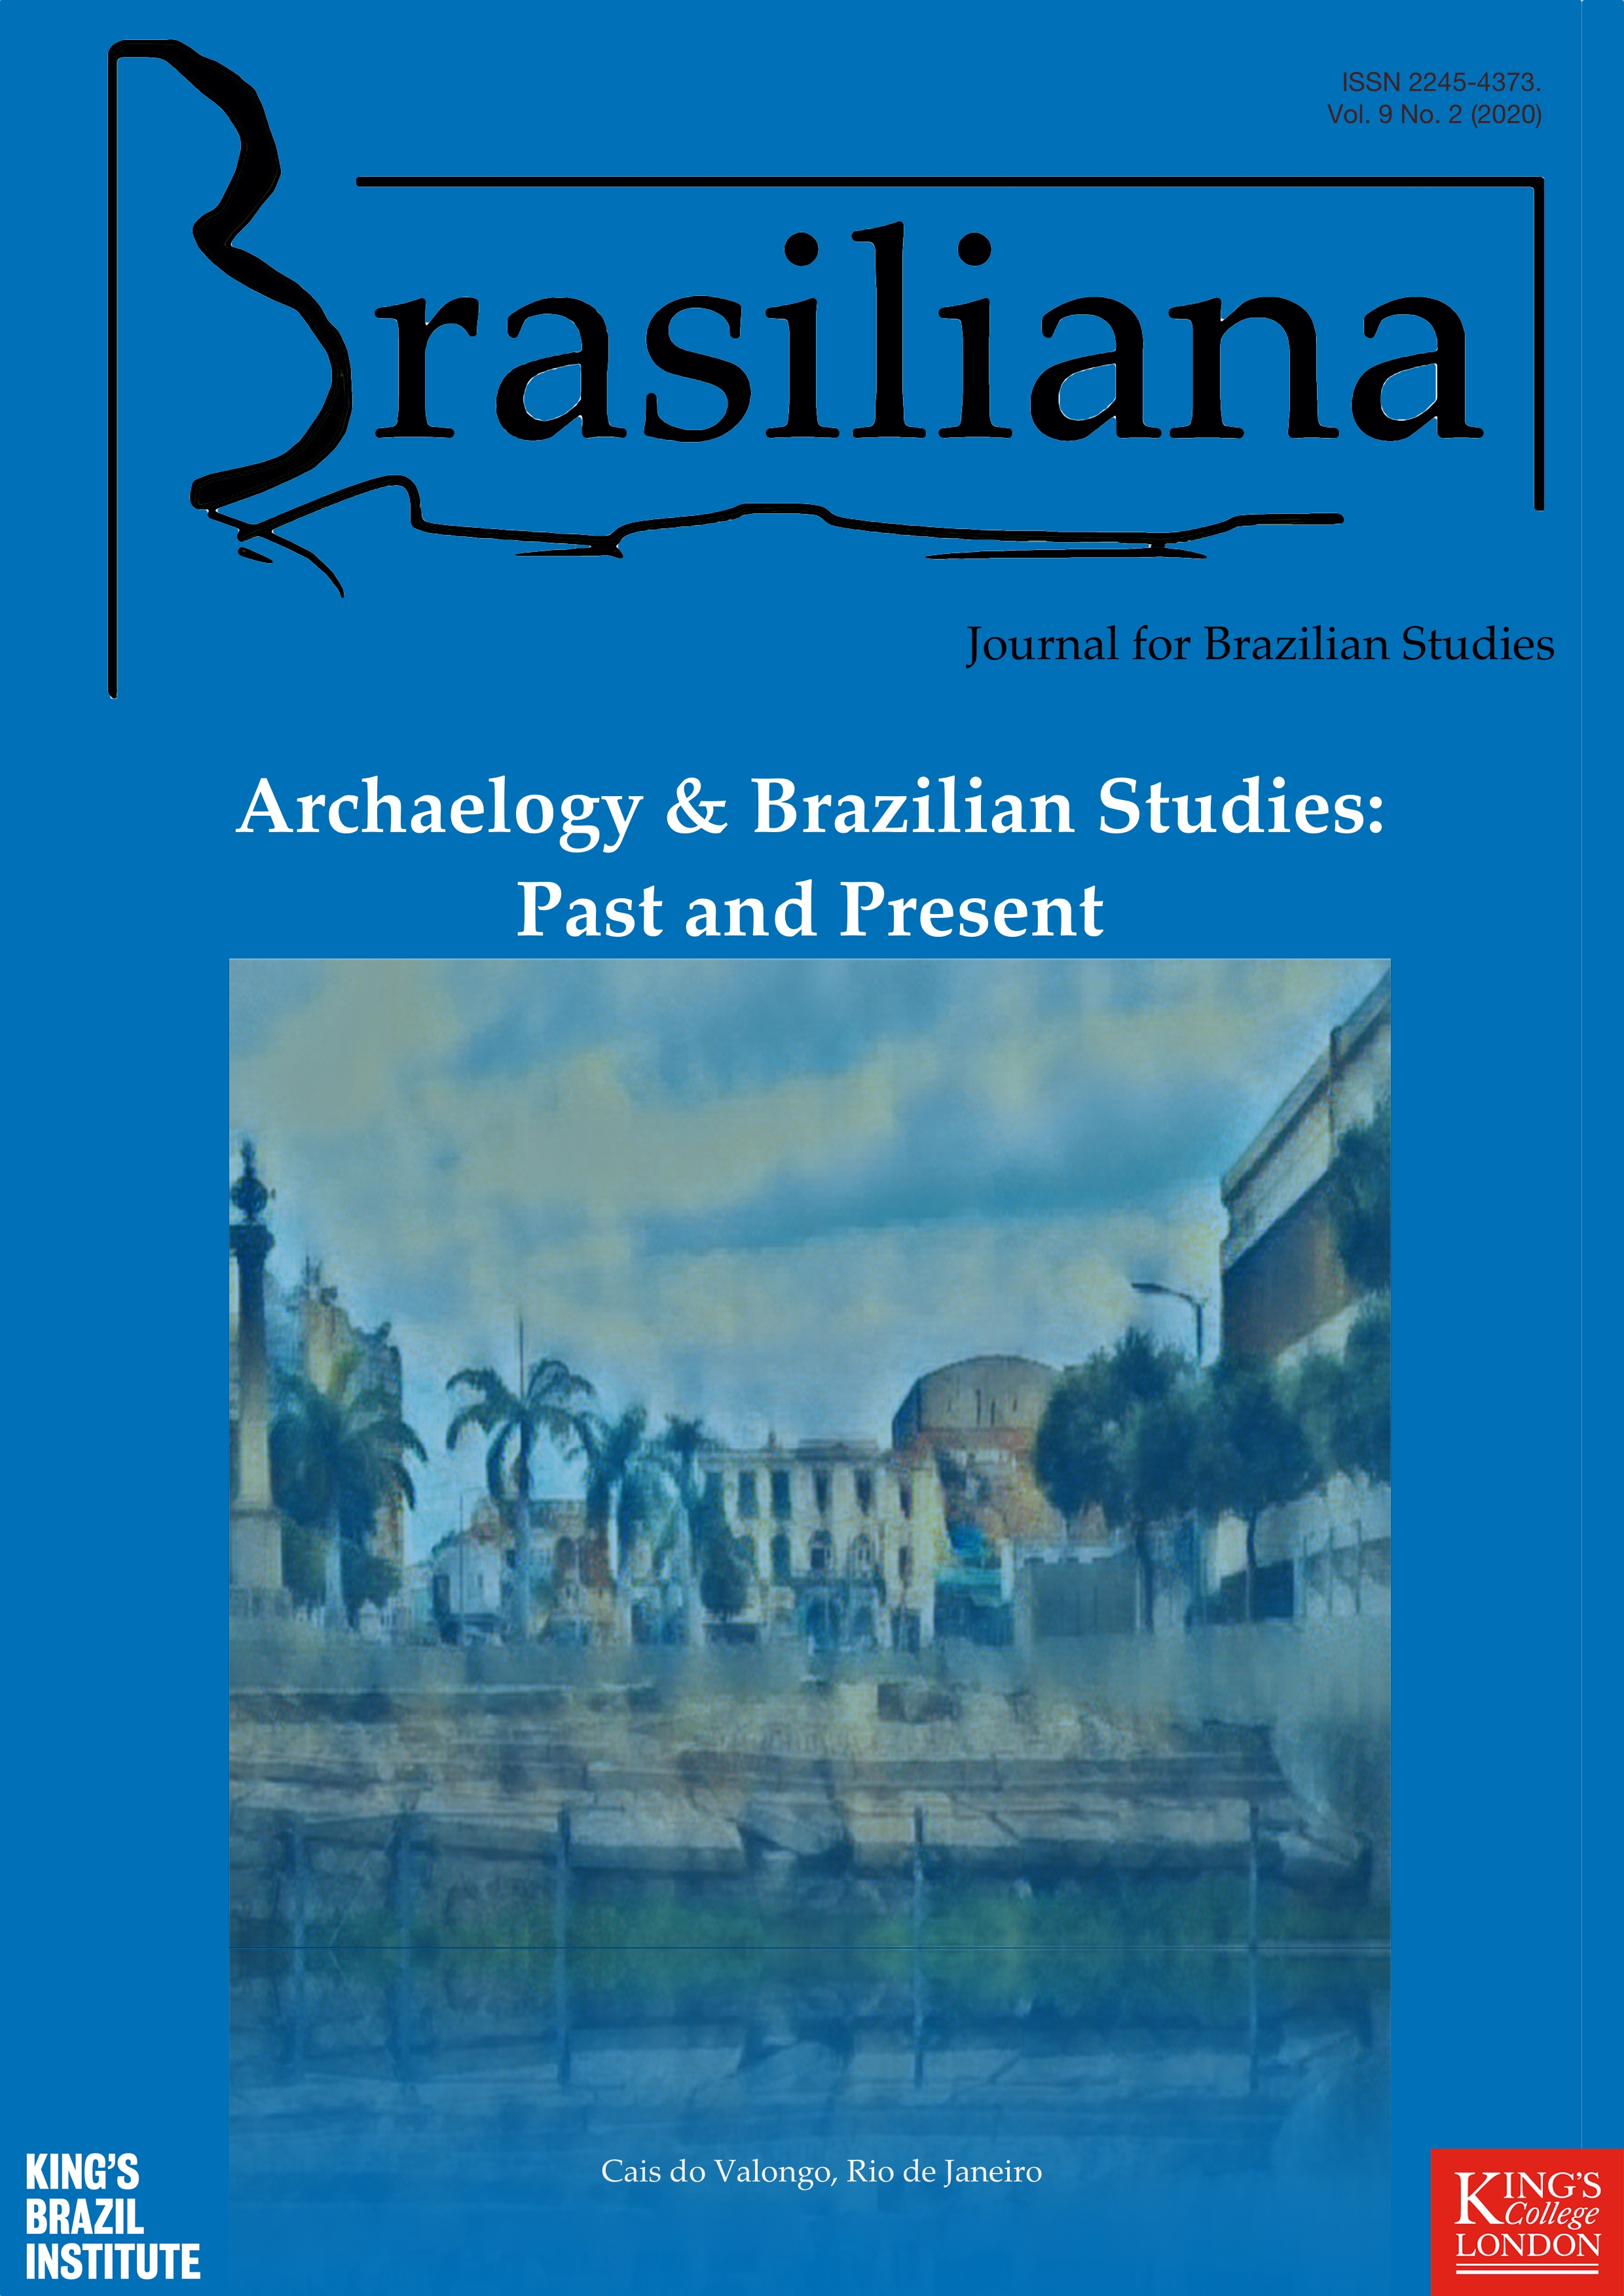 Cover of volume 9, number 2, published in late 2020